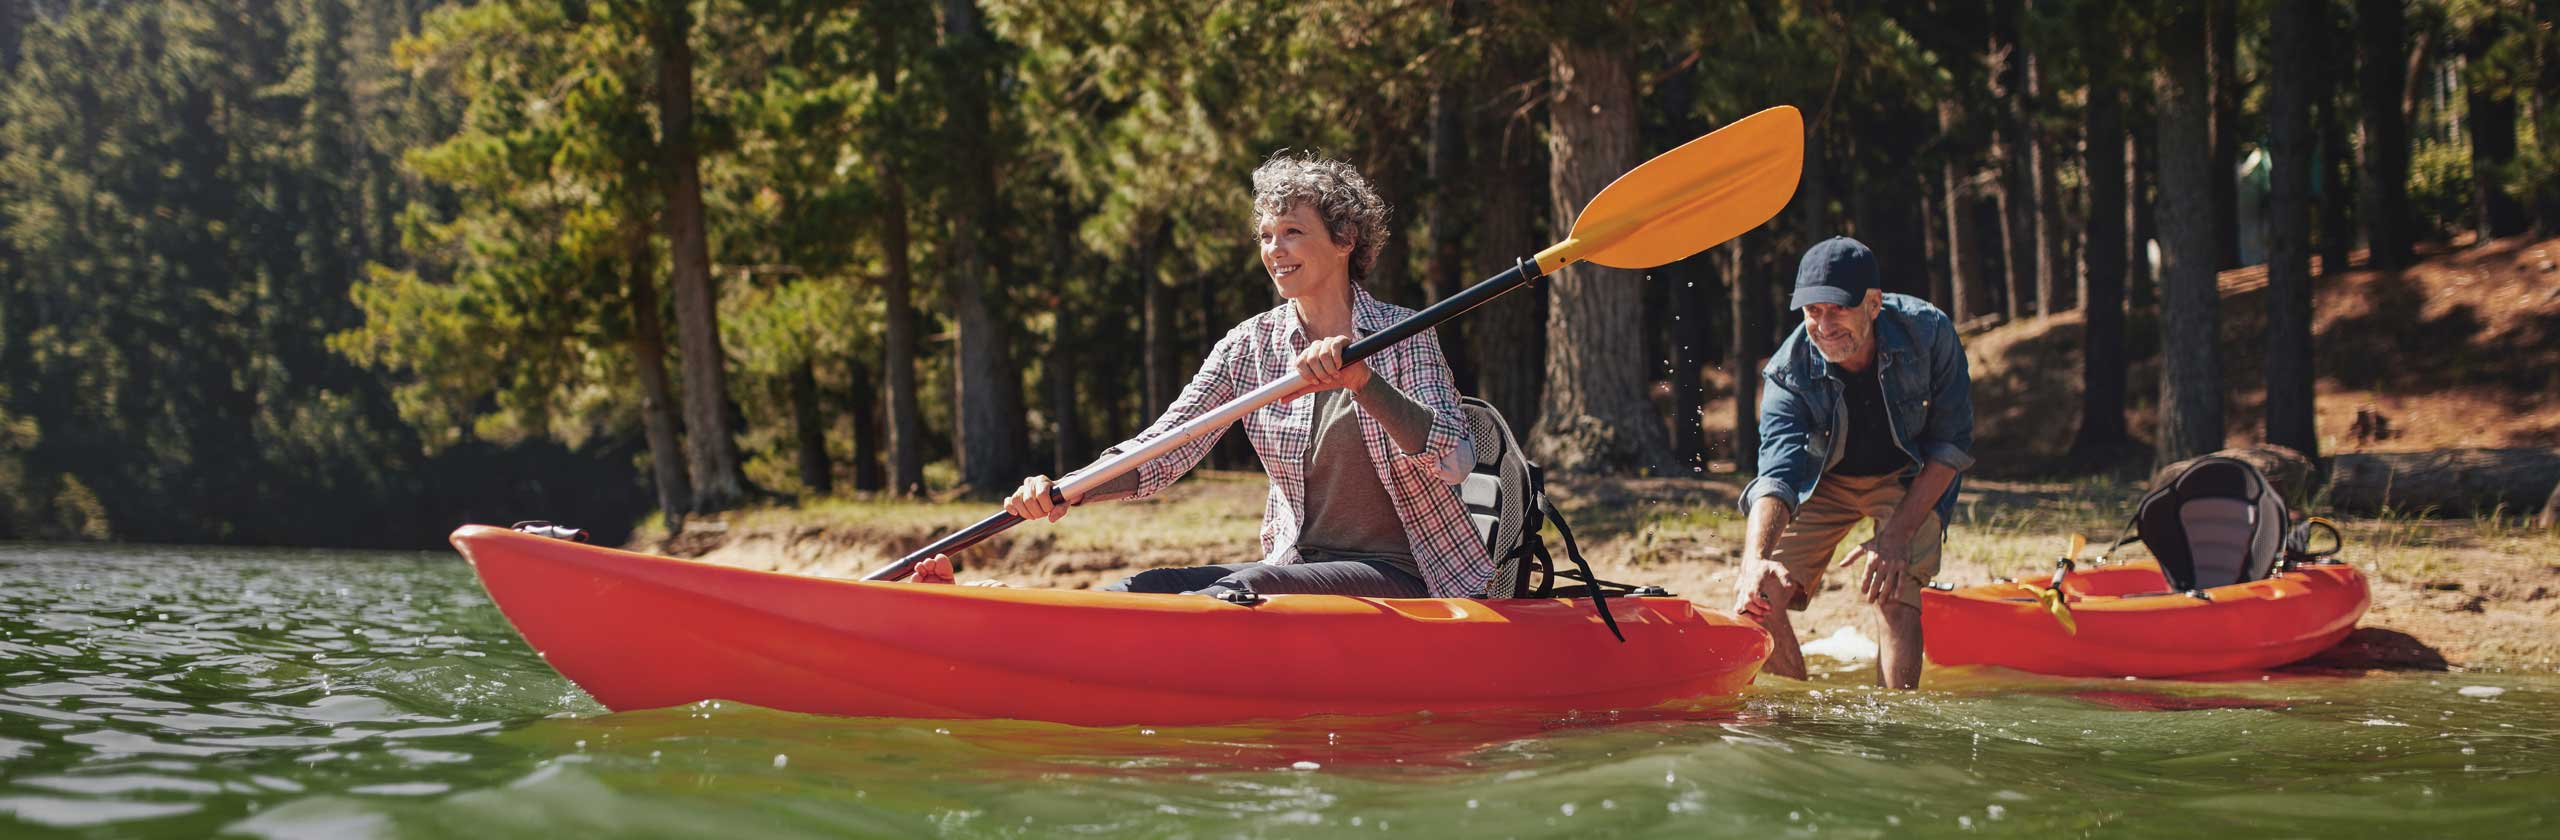 Woman kayaking on a sunny day